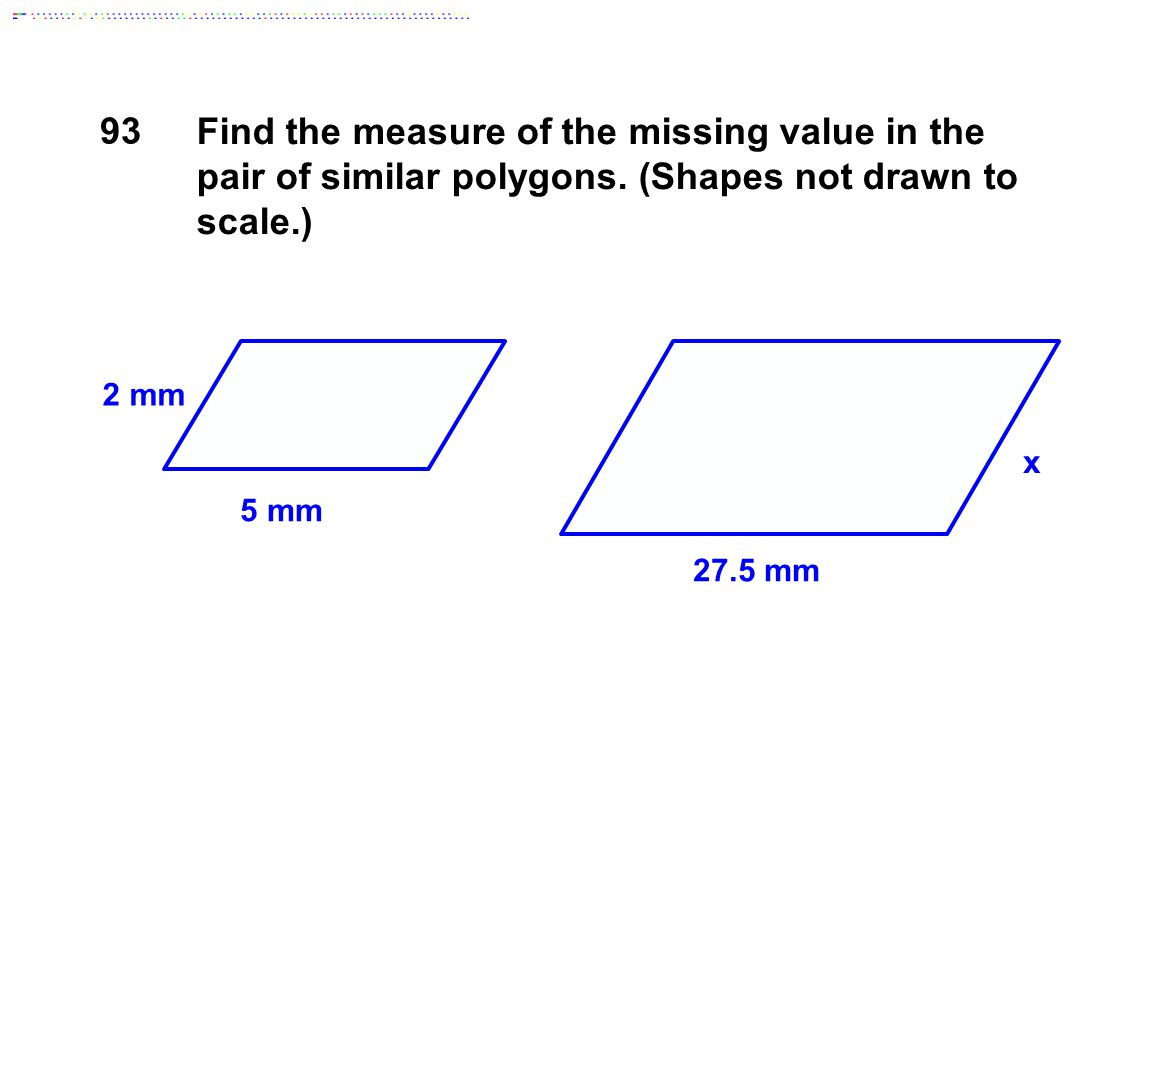 93 Find the measure of the missing value in the pair of similar polygons. (Shapes not drawn to scale.)